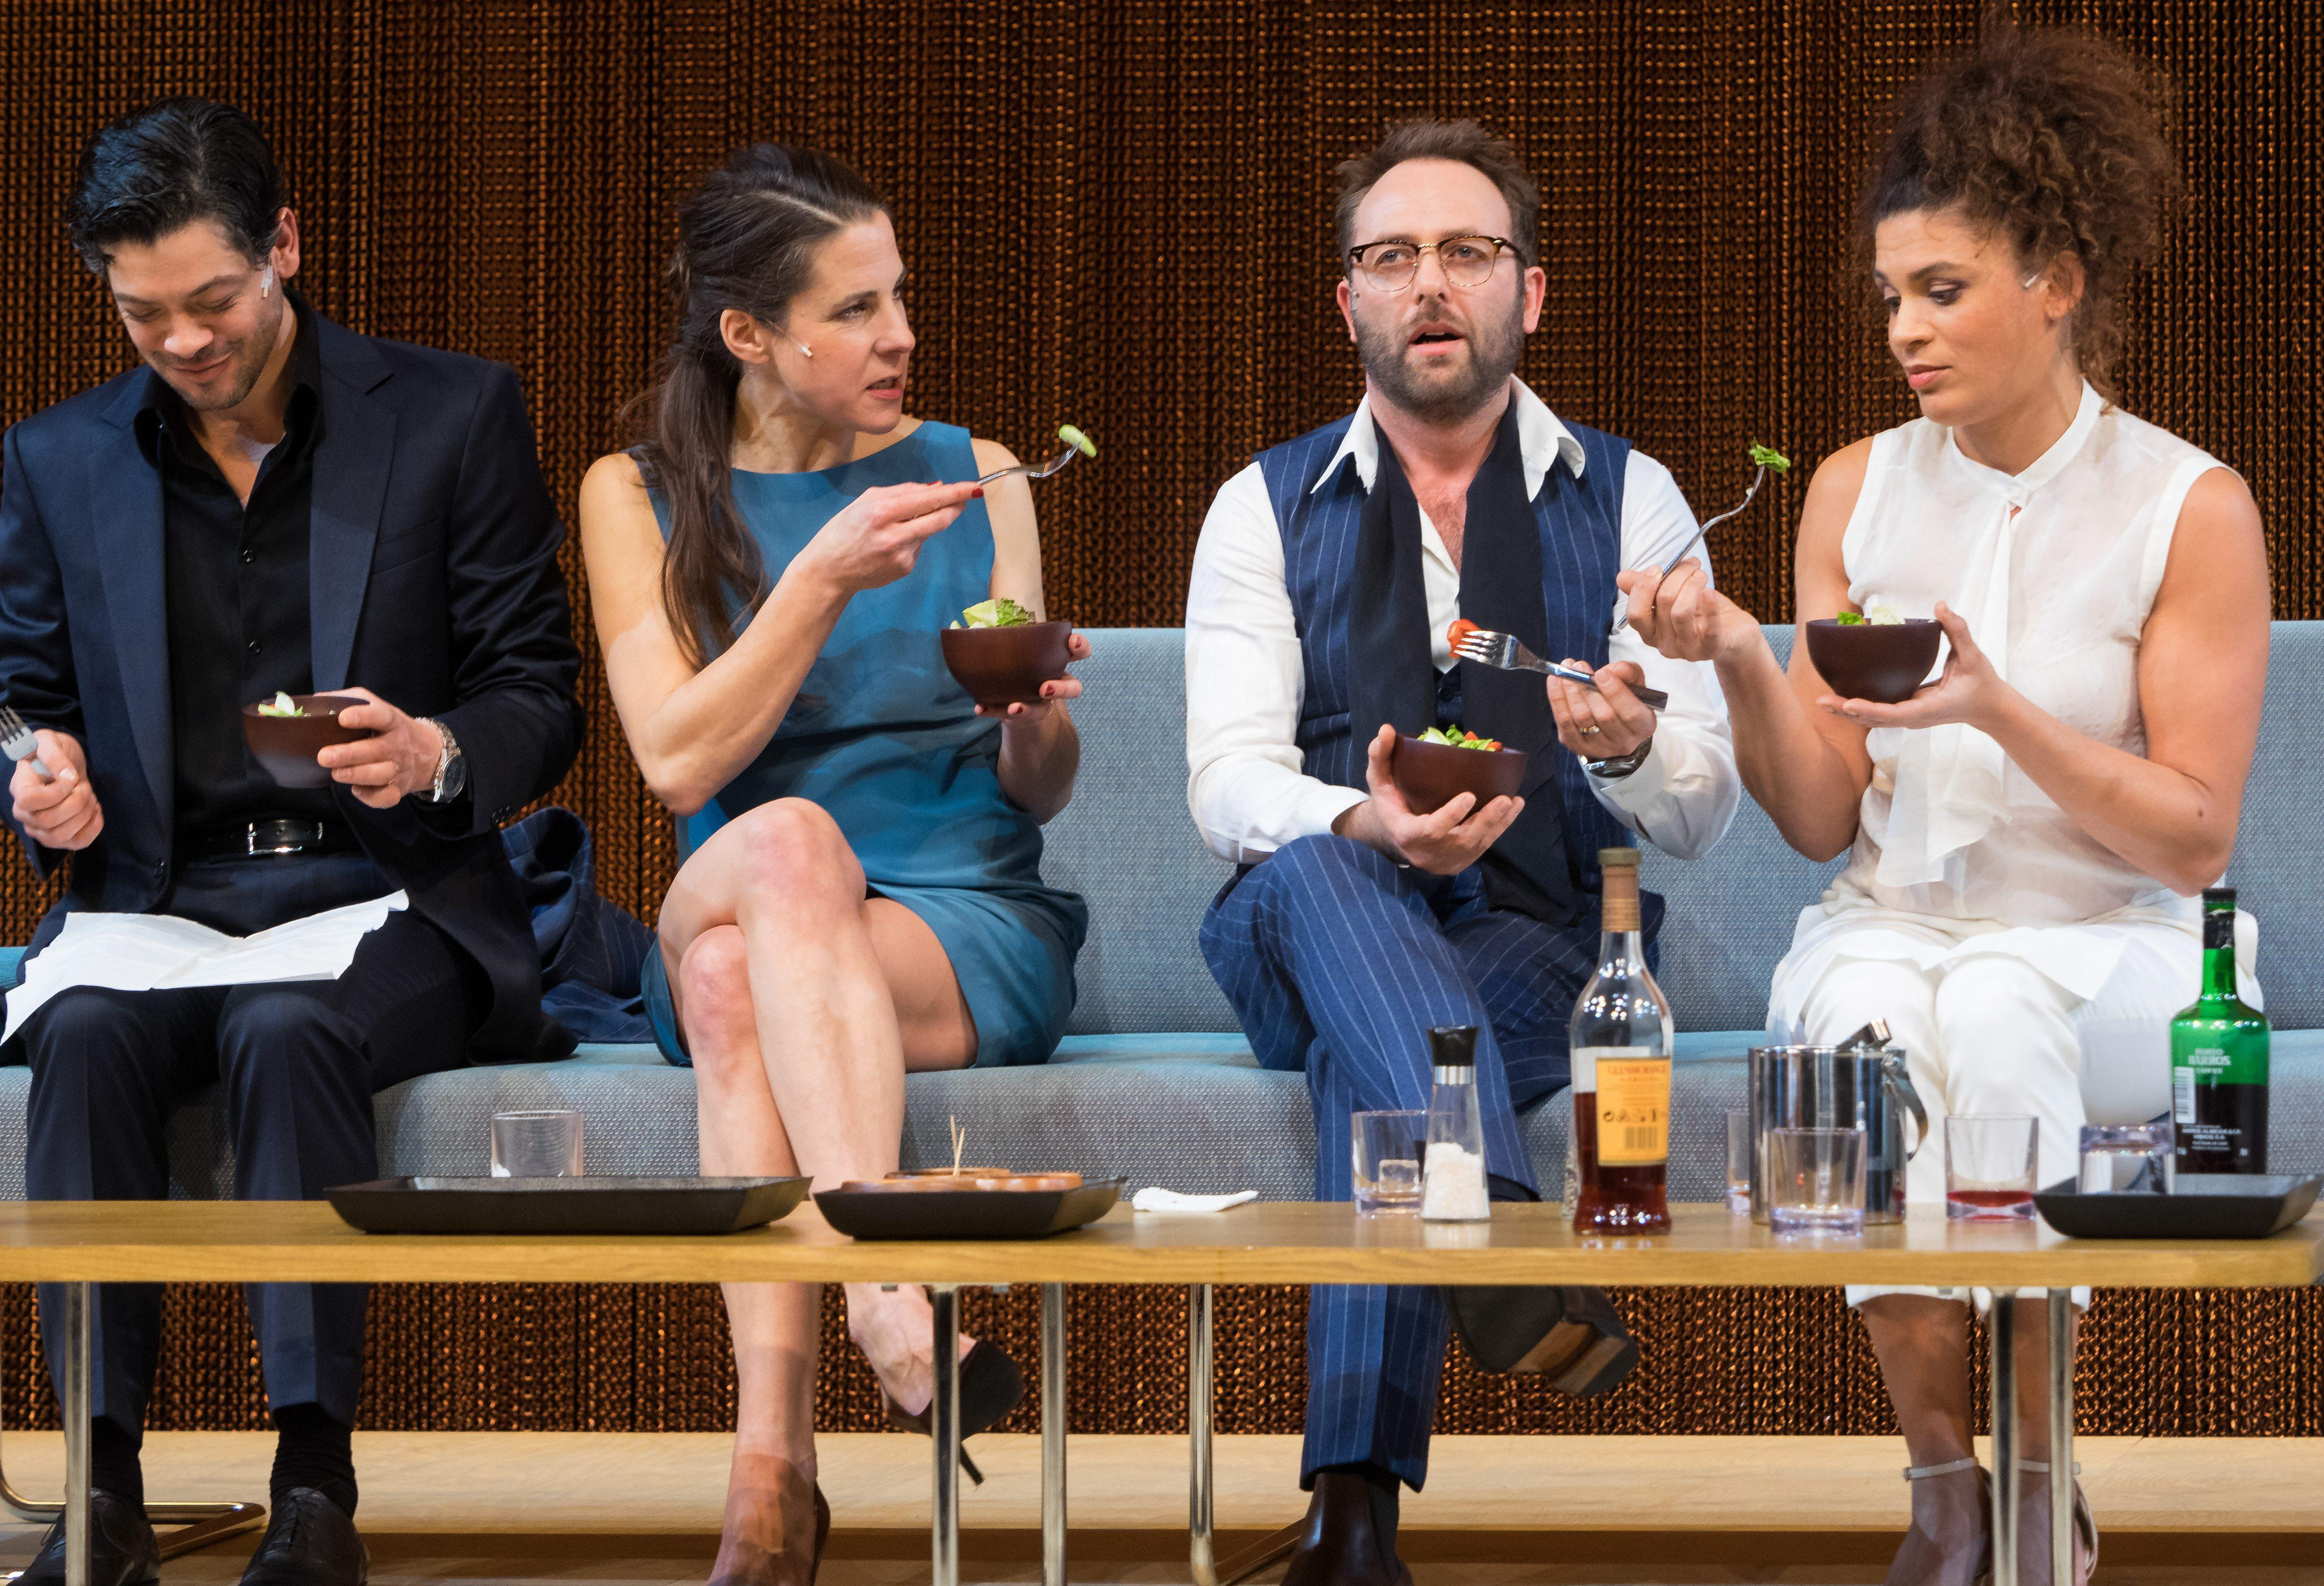 Four actors sitting on couch onstage (© dpa picture alliance/Alamy Stock Photo)